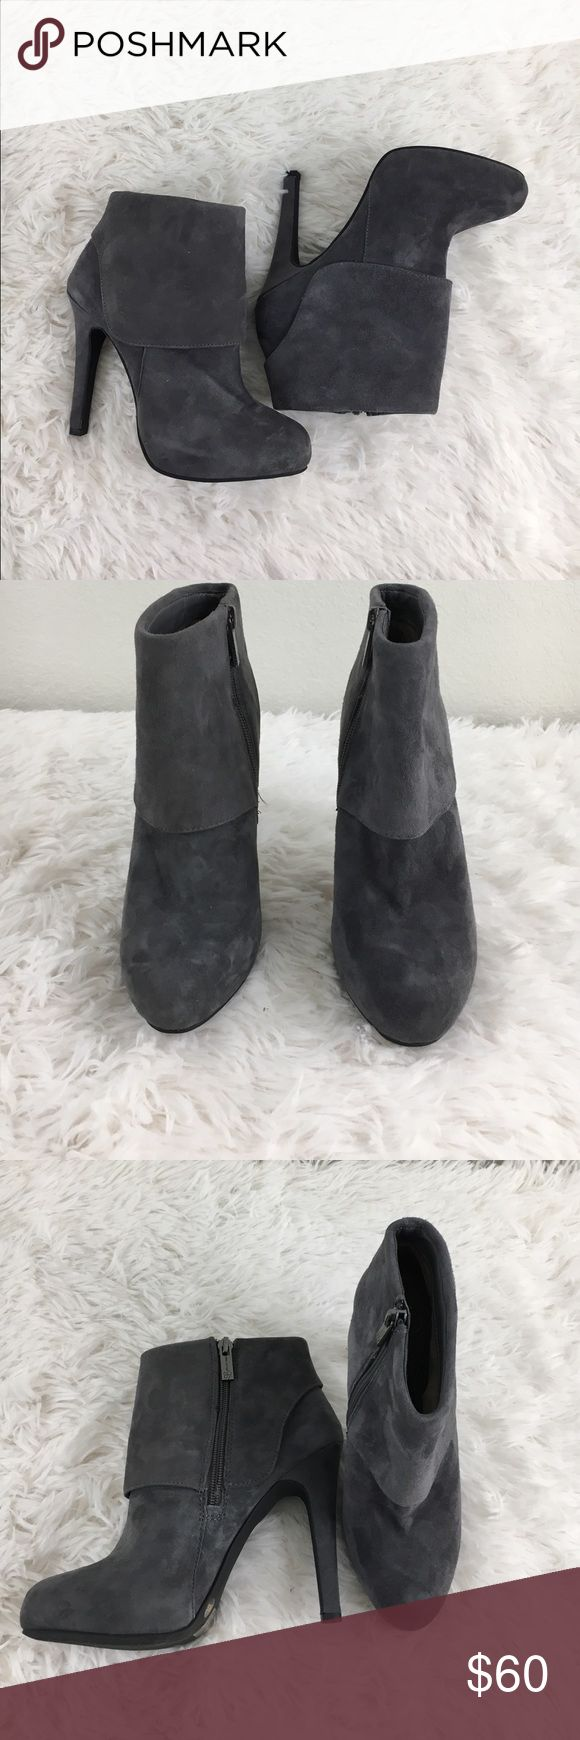 NEW Gray Suede Jessica Simpson Booties NEW Gray Suede Jessica Simpson Ankle Boots with side zipper. Jessica Simpson Shoes Heeled Boots